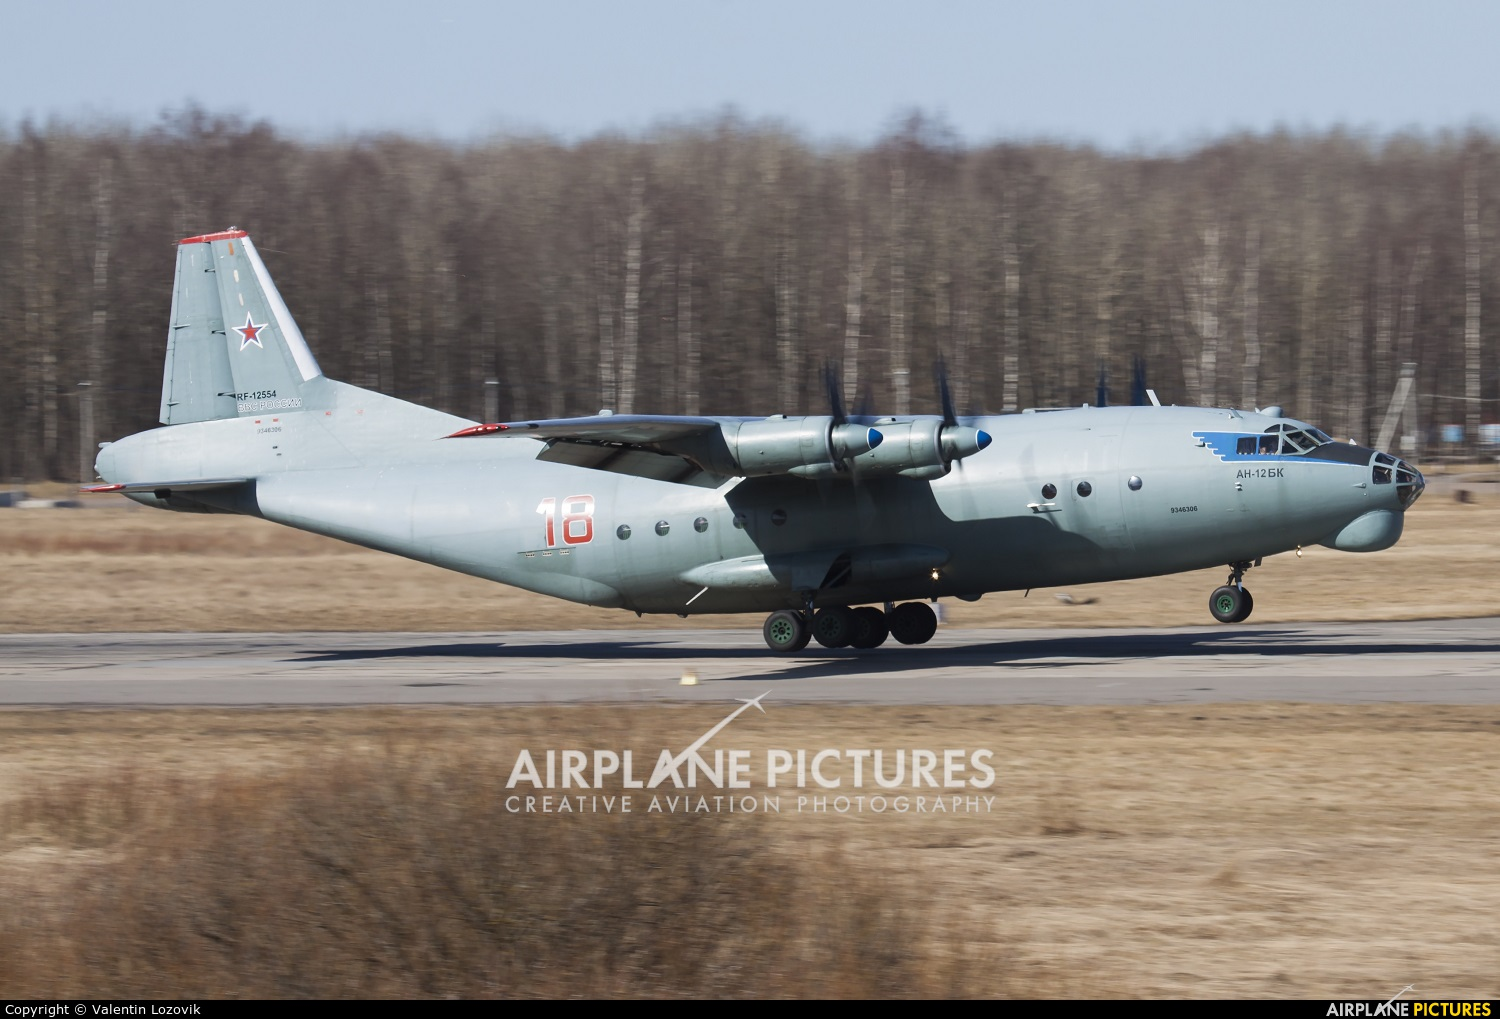 Russia - Air Force RF-12554 aircraft at Undisclosed location